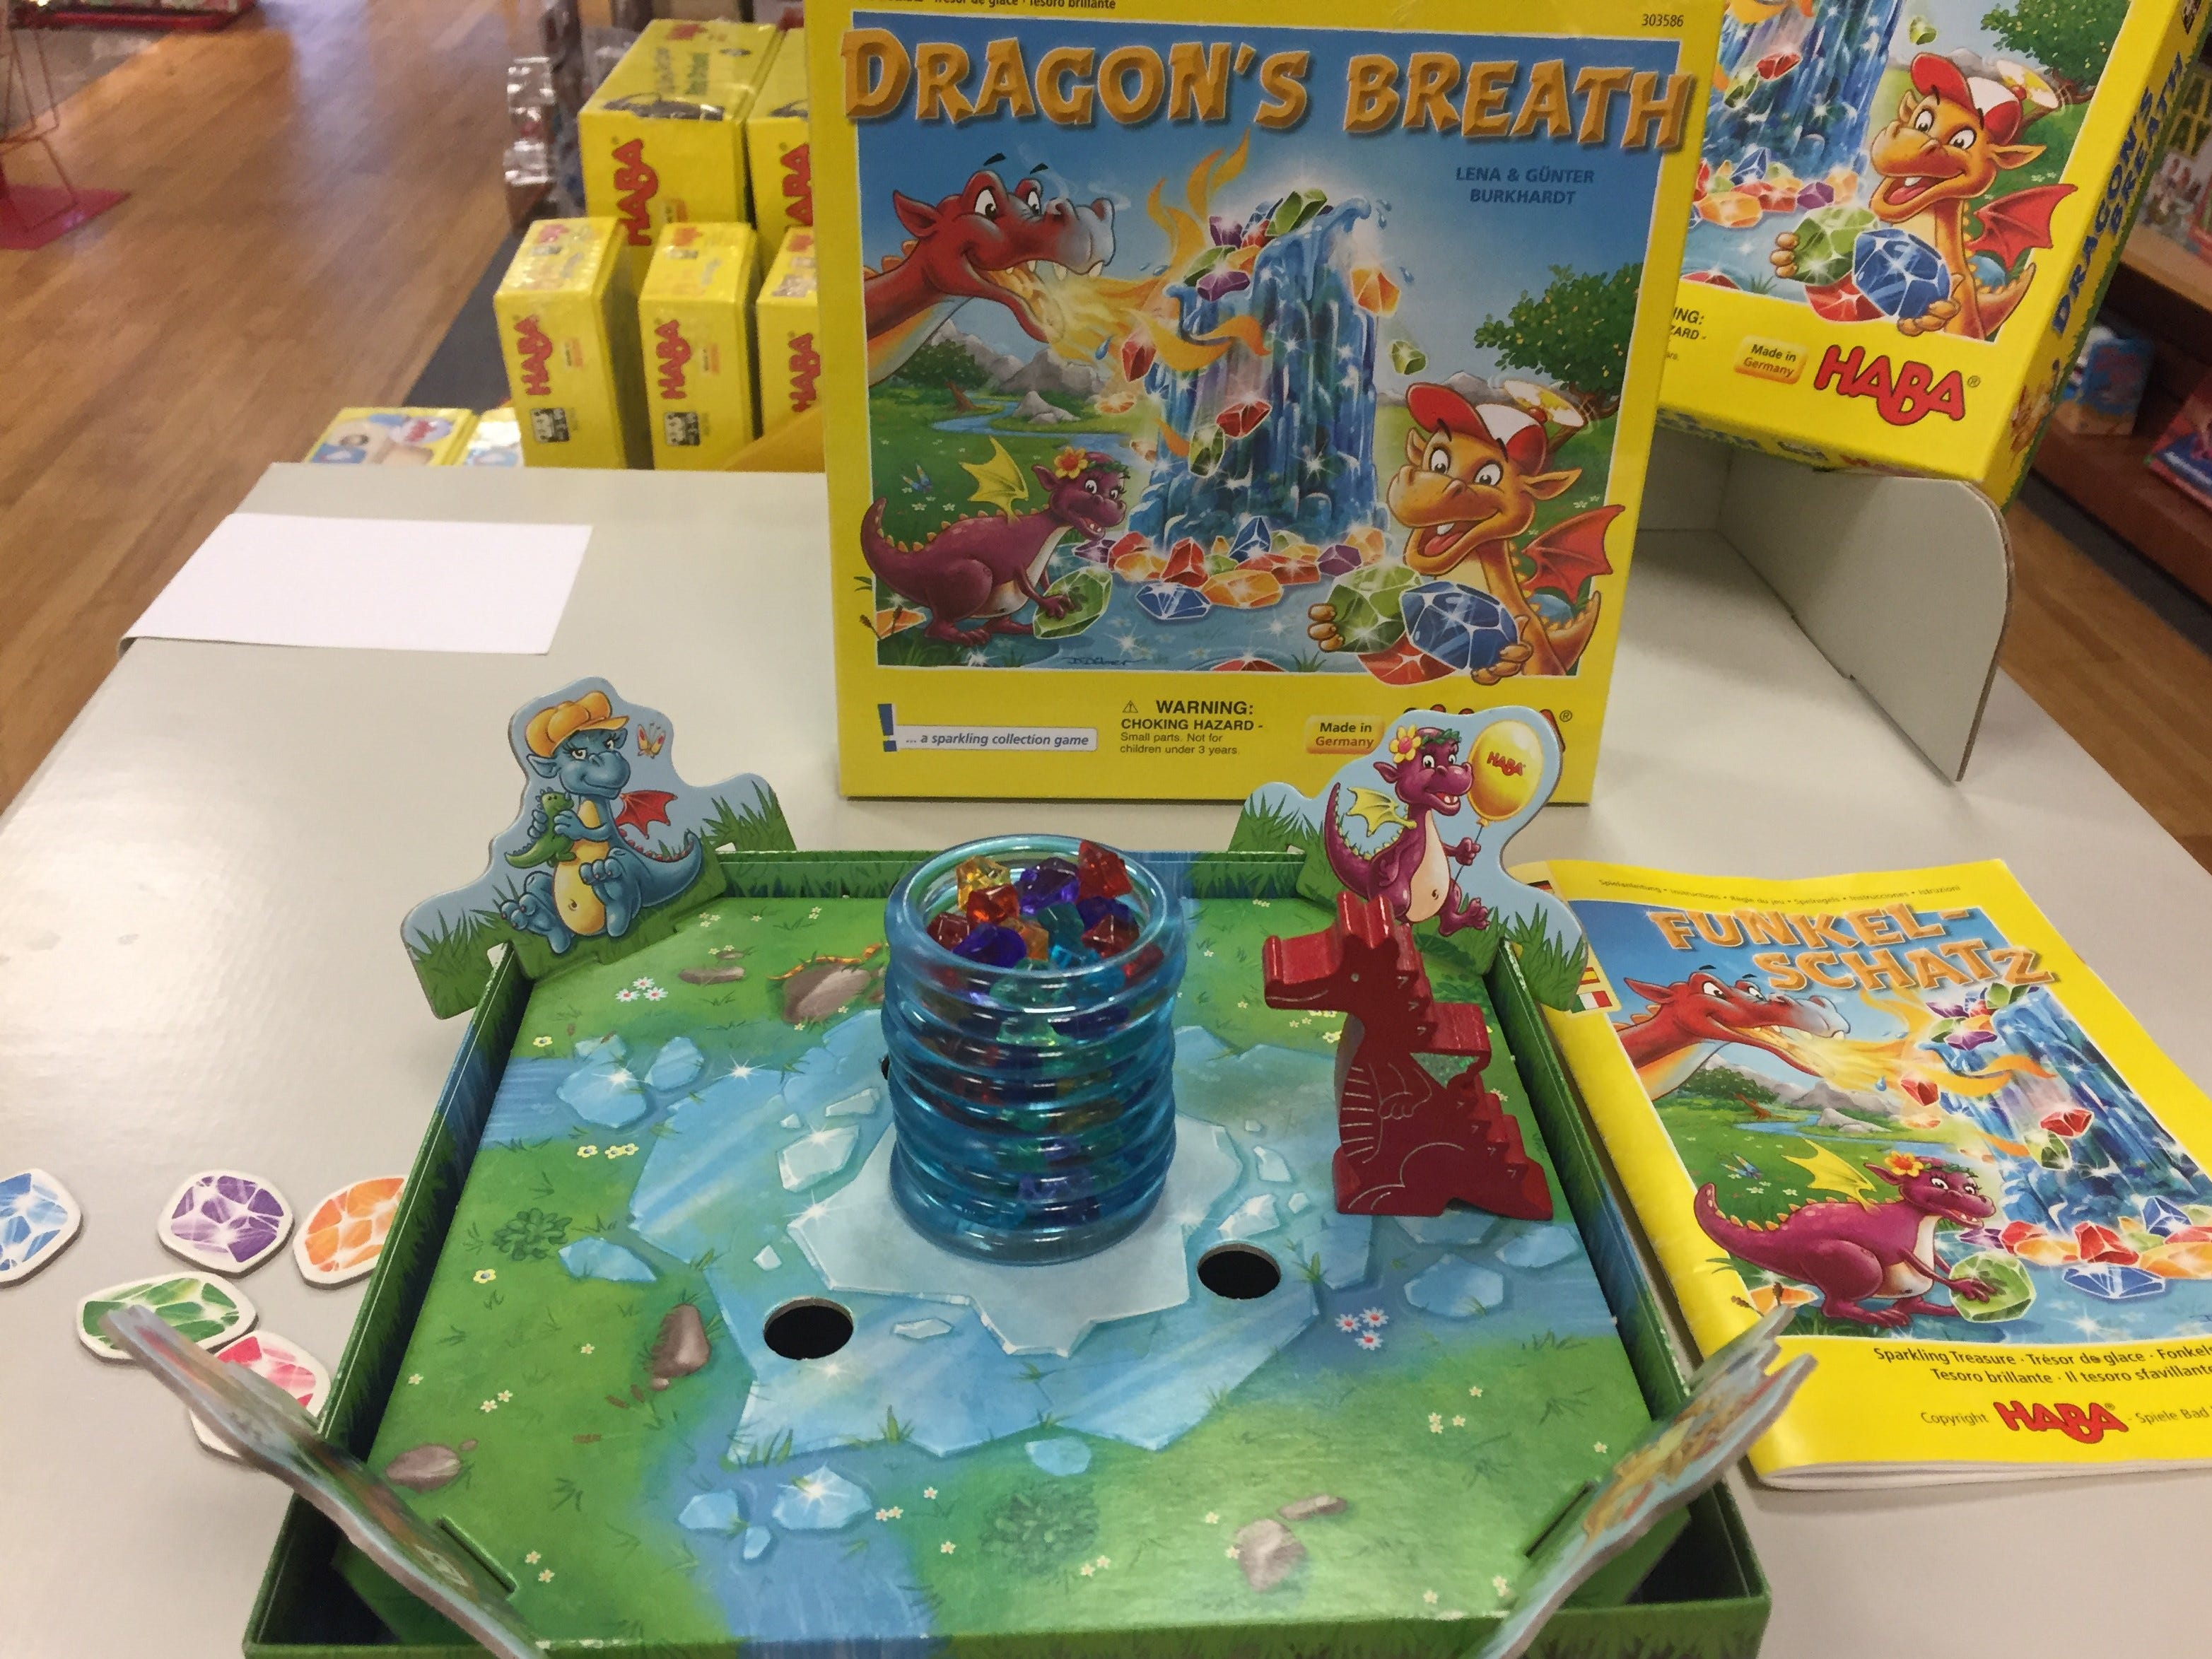 Dragon's Breath is another game sold at Board Game Barrister that families can have fun with together.